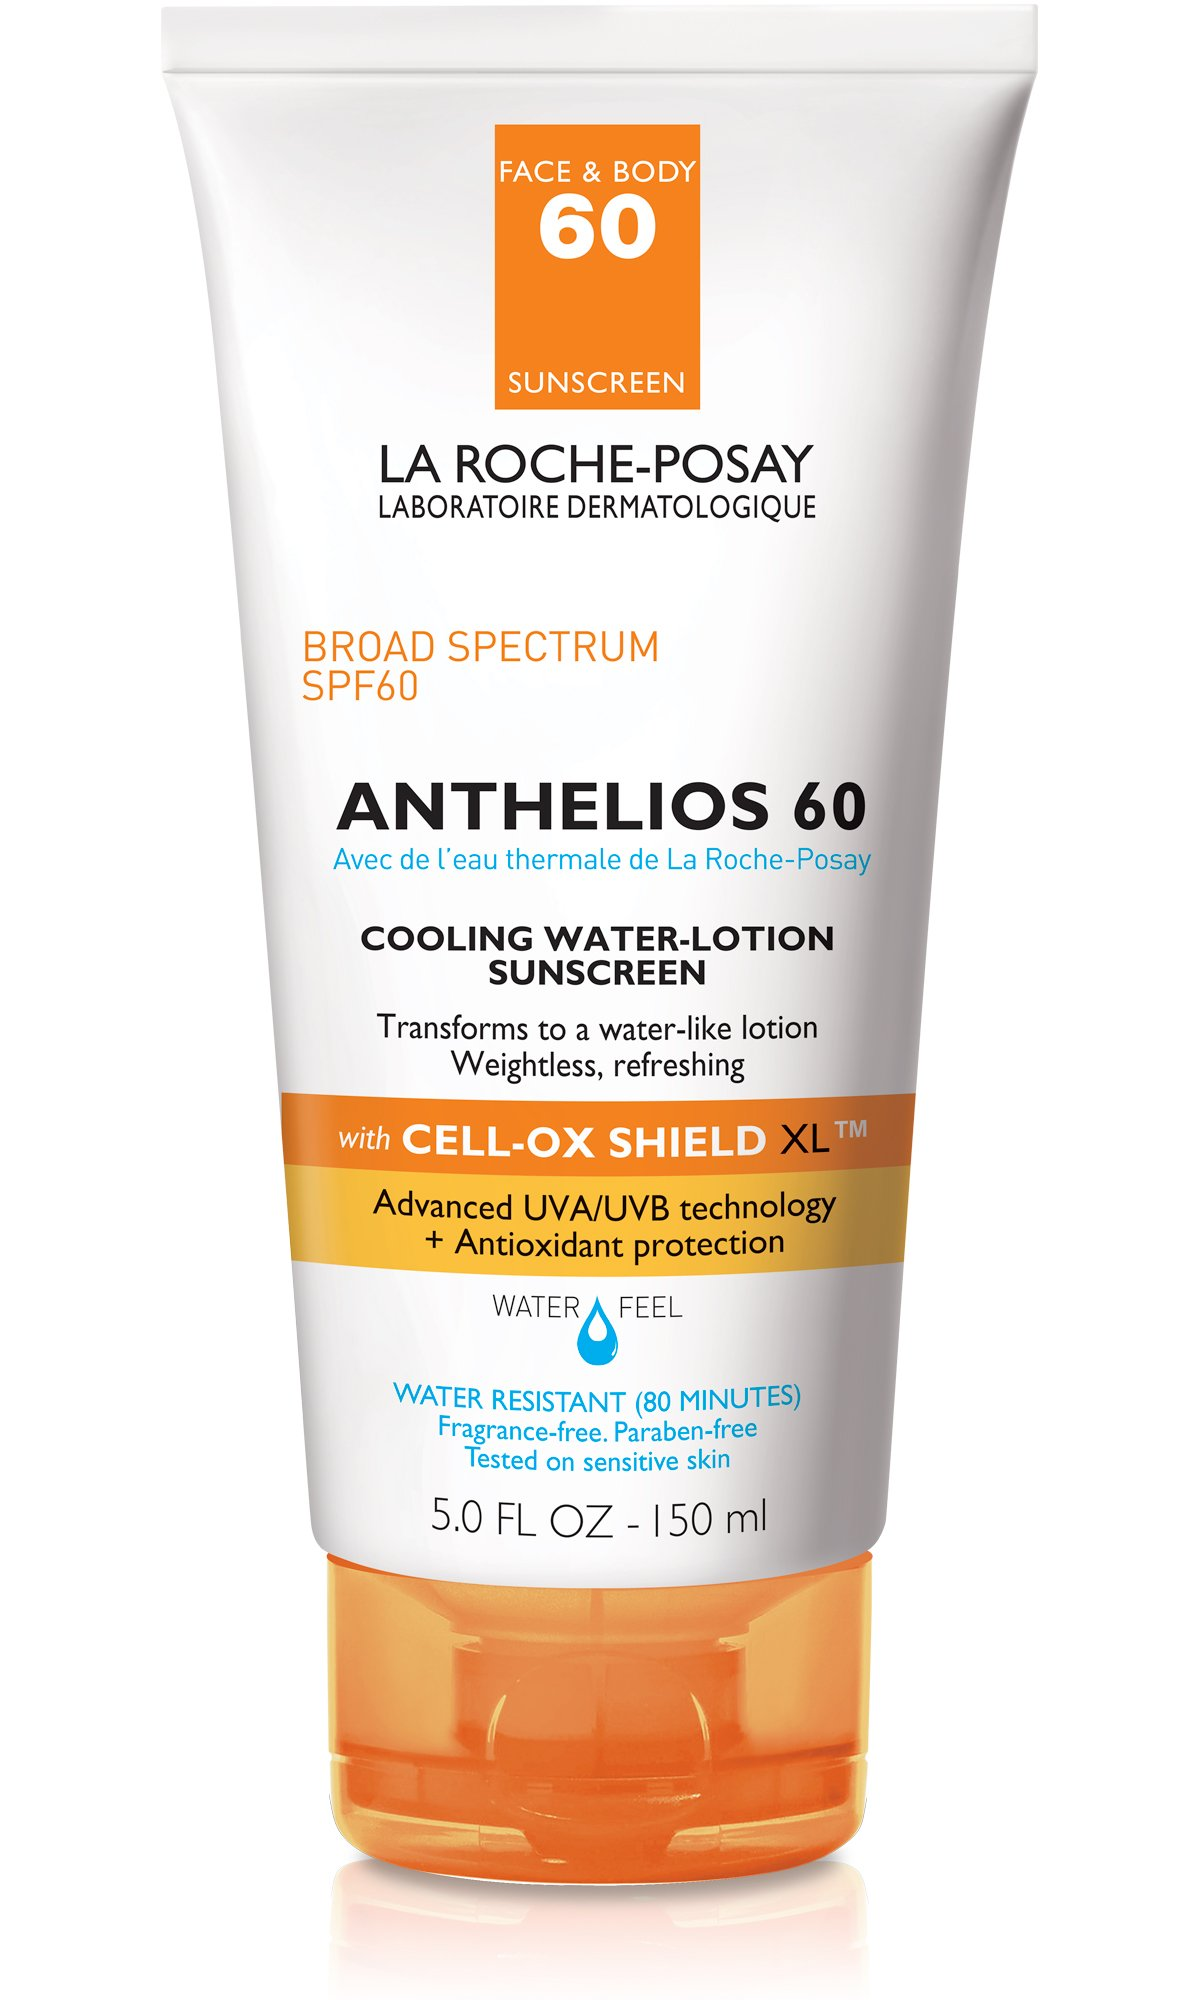 La Roche-Posay Anthelios Cooling Water Lotion Sunscreen SPF 60, 5 Fl. Oz. by La Roche-Posay